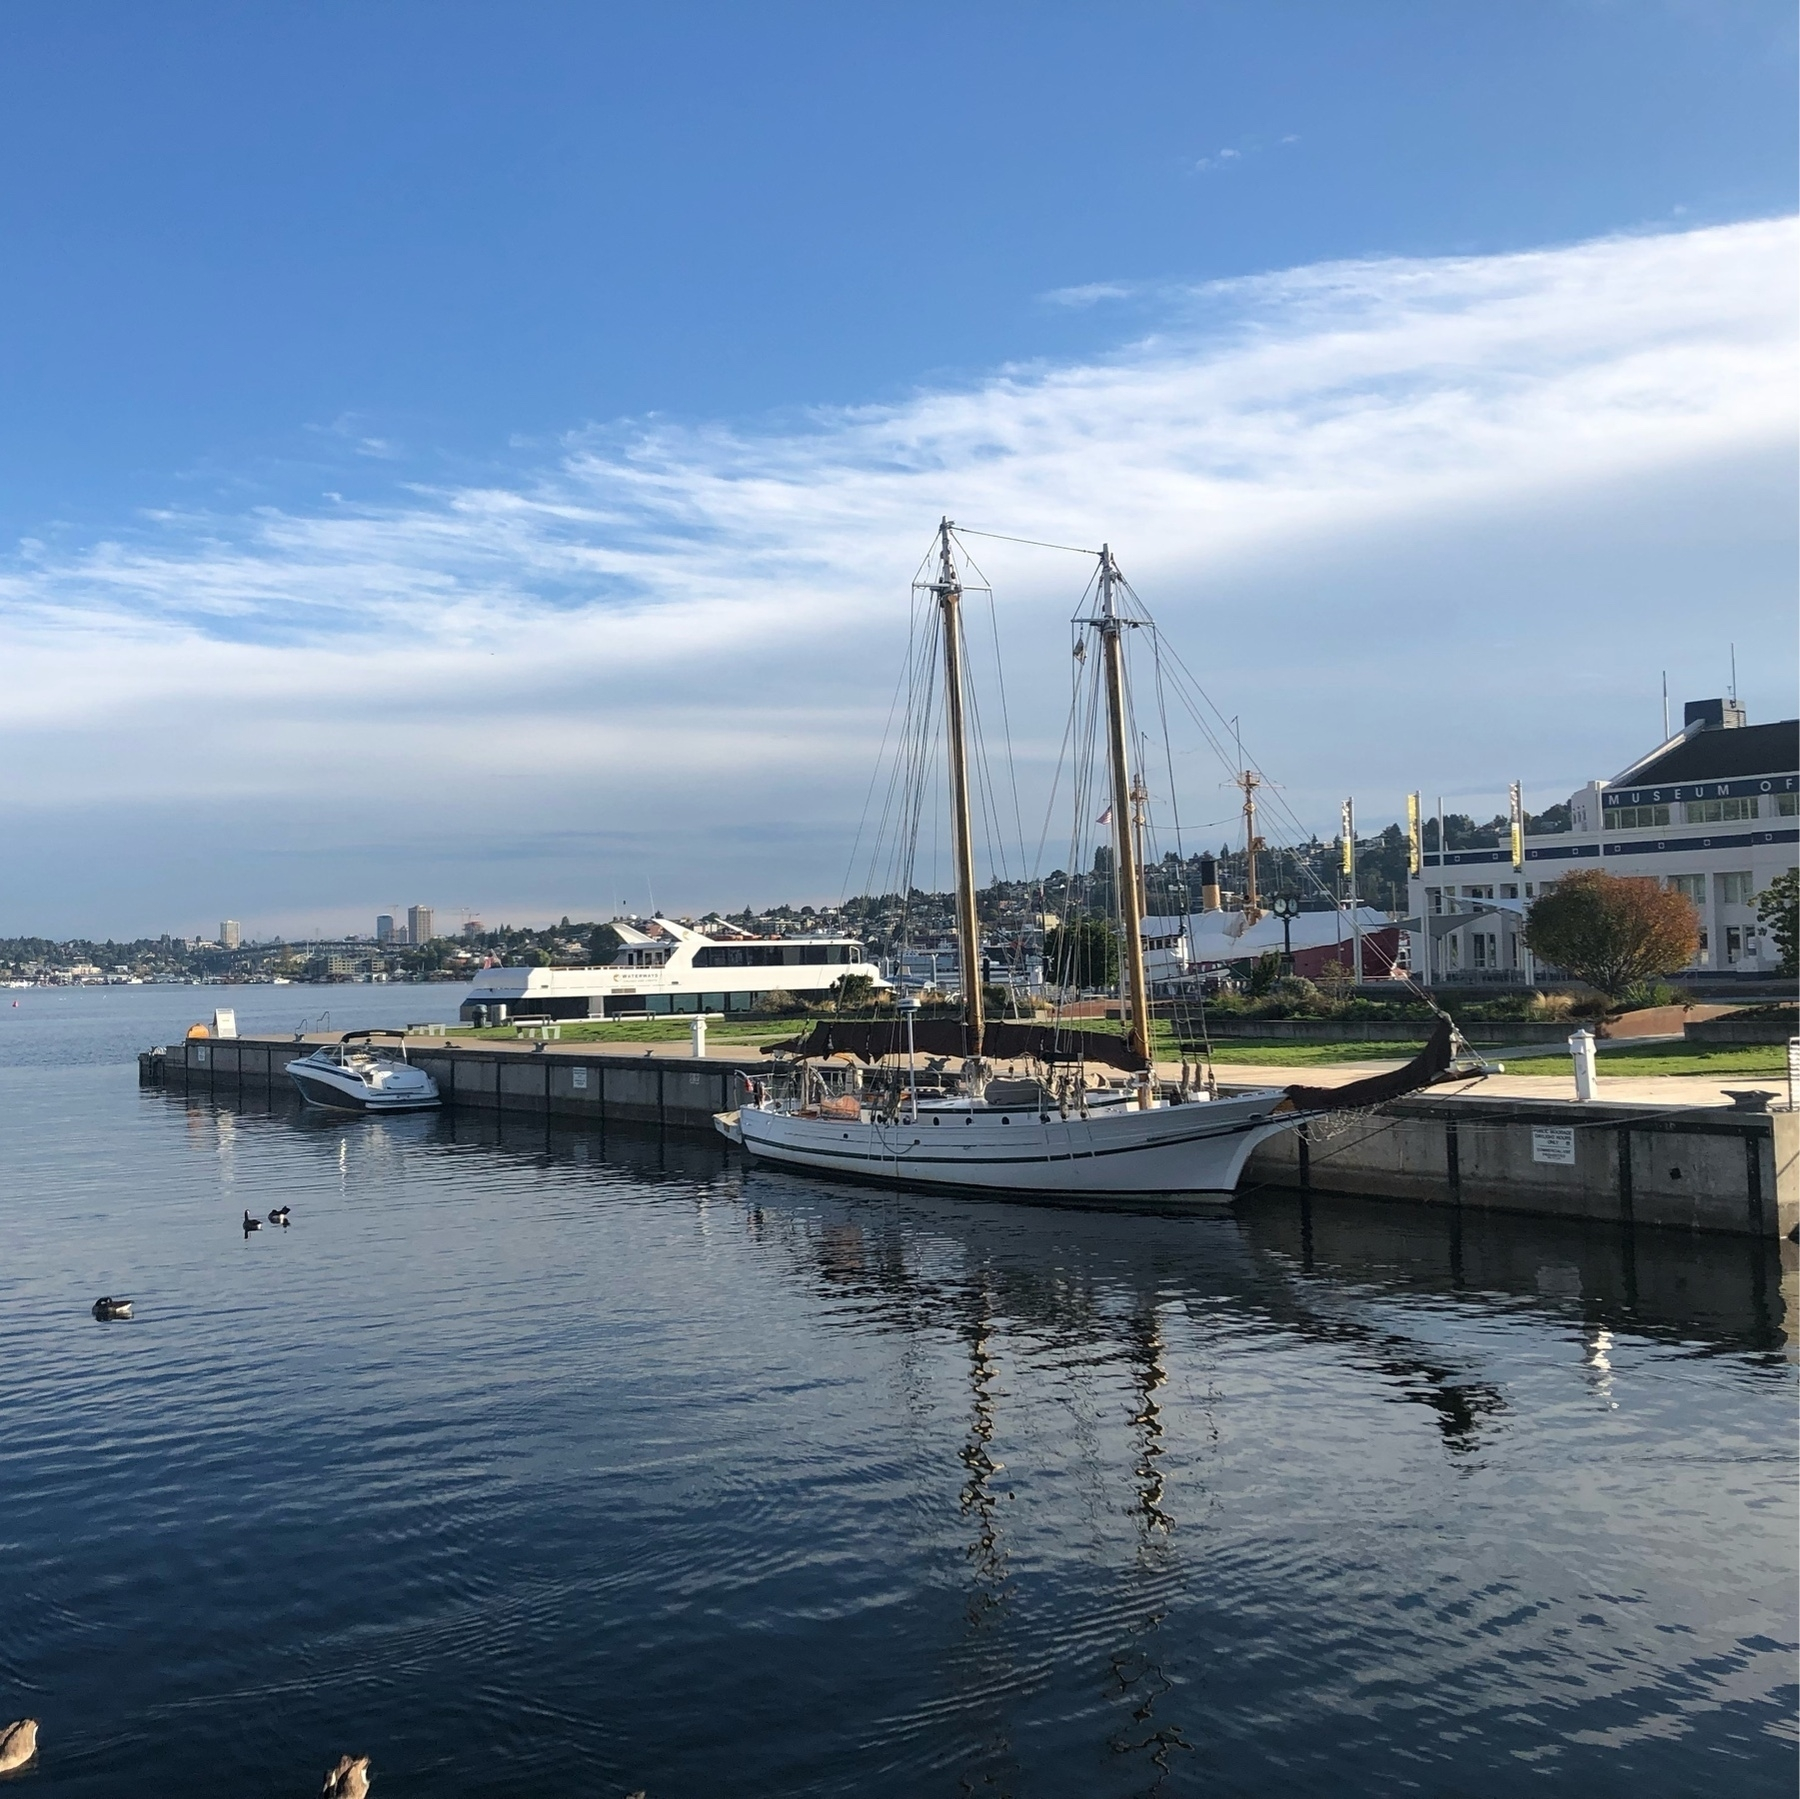 Three ships on south lake union. Ripply reflective water. The closest ship has sails to the masts. A few Canadian Geese dot the water. A very boaty photo.